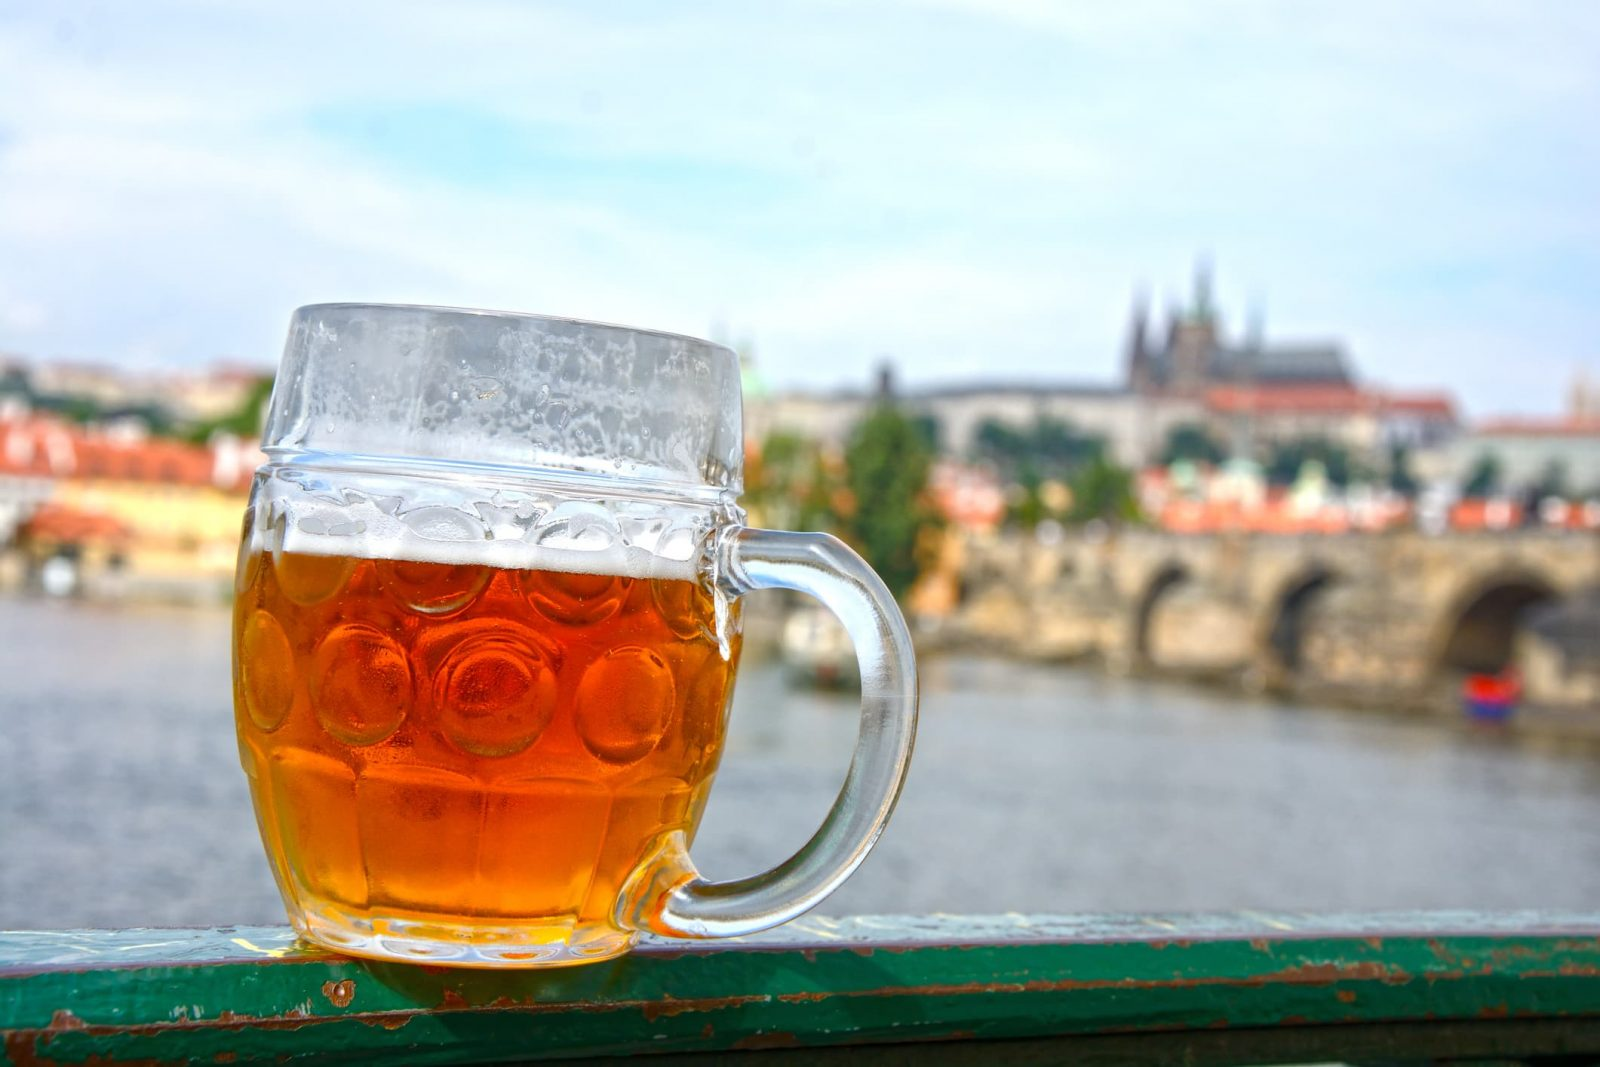 Polish journalists thirsty to test allegedly contaminated Czech beer